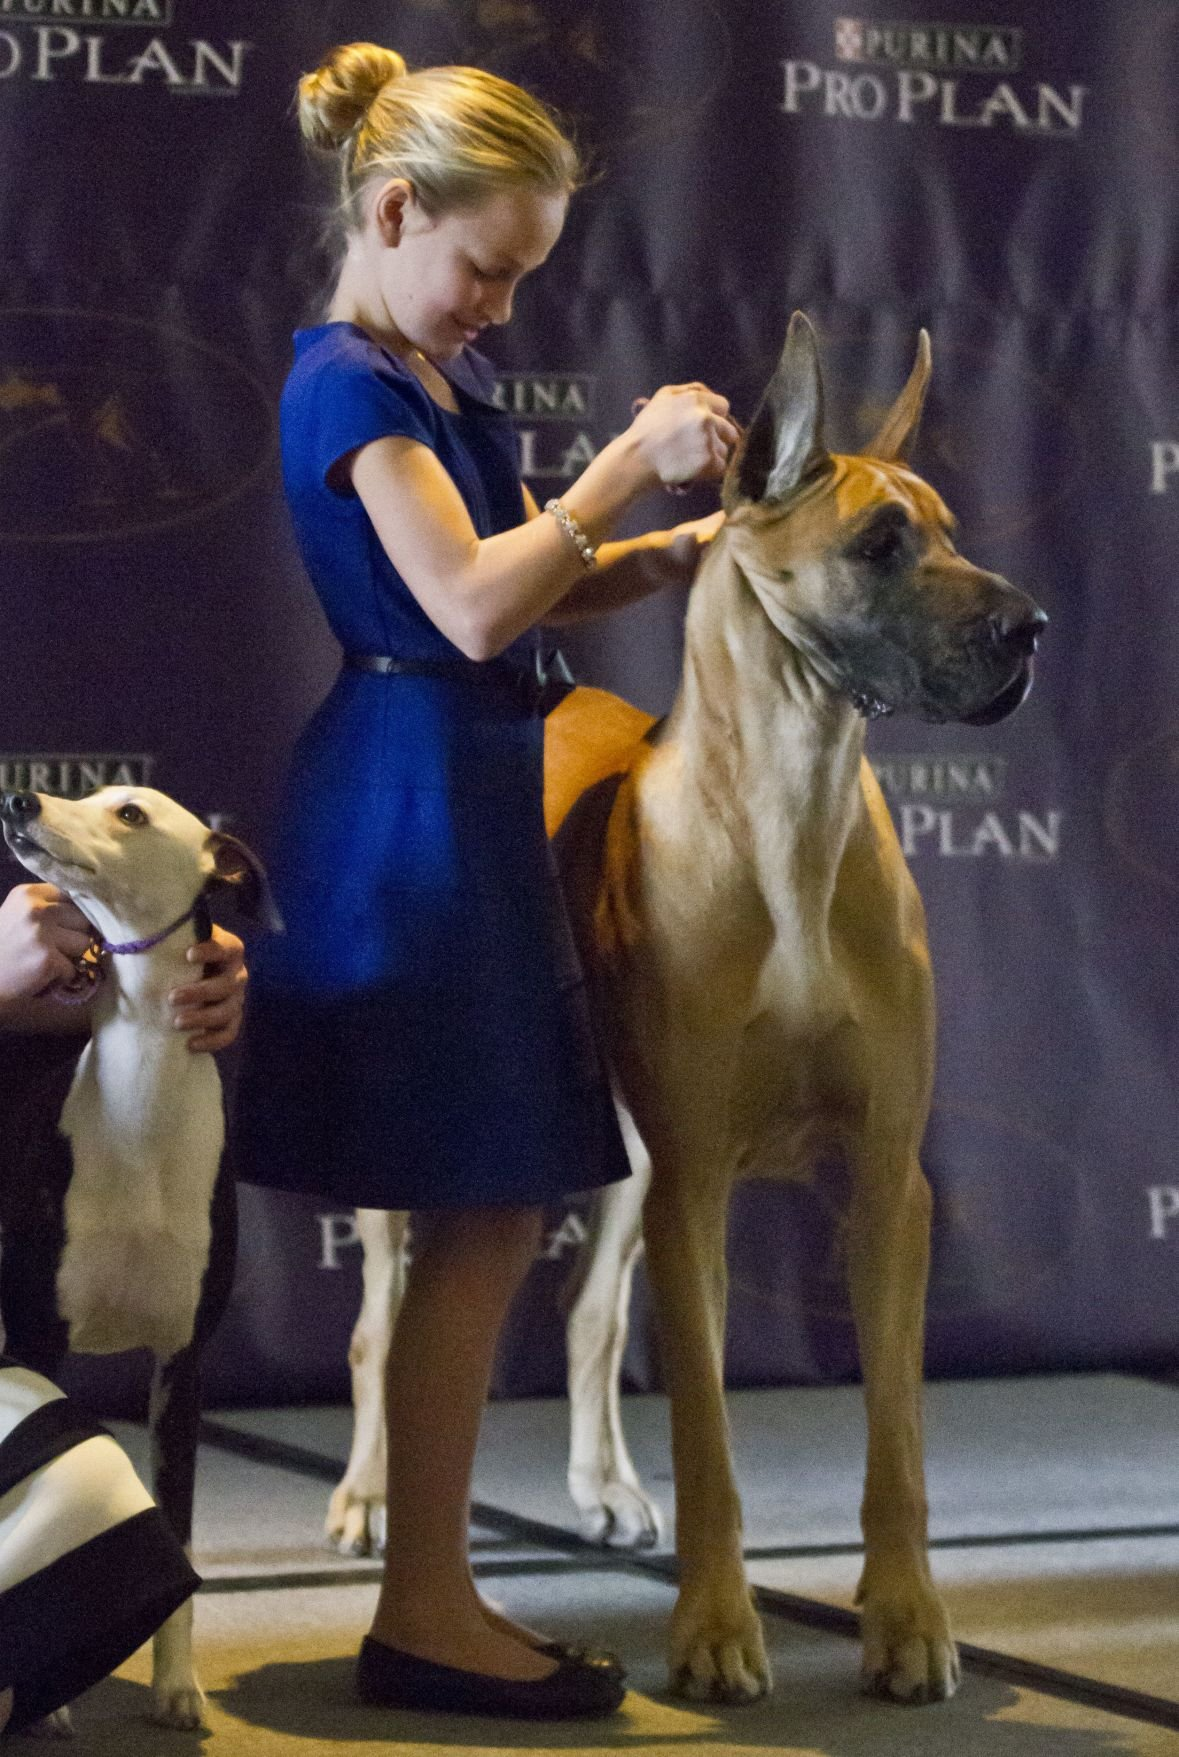 At Westminster show, 2 new breeds, bigger agility contest